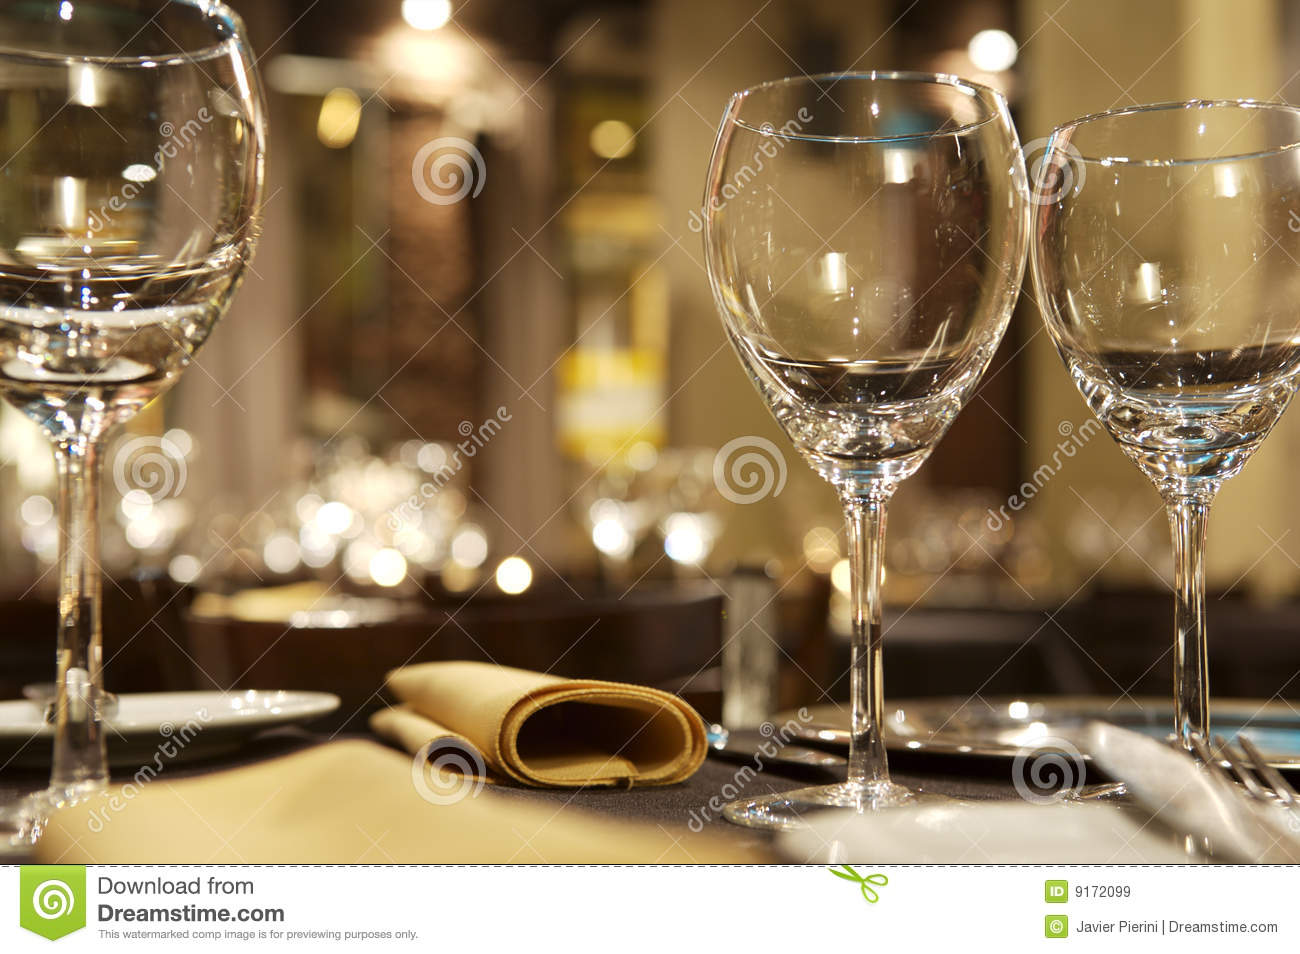 Charmant Wine Glasses On Restaurant Table